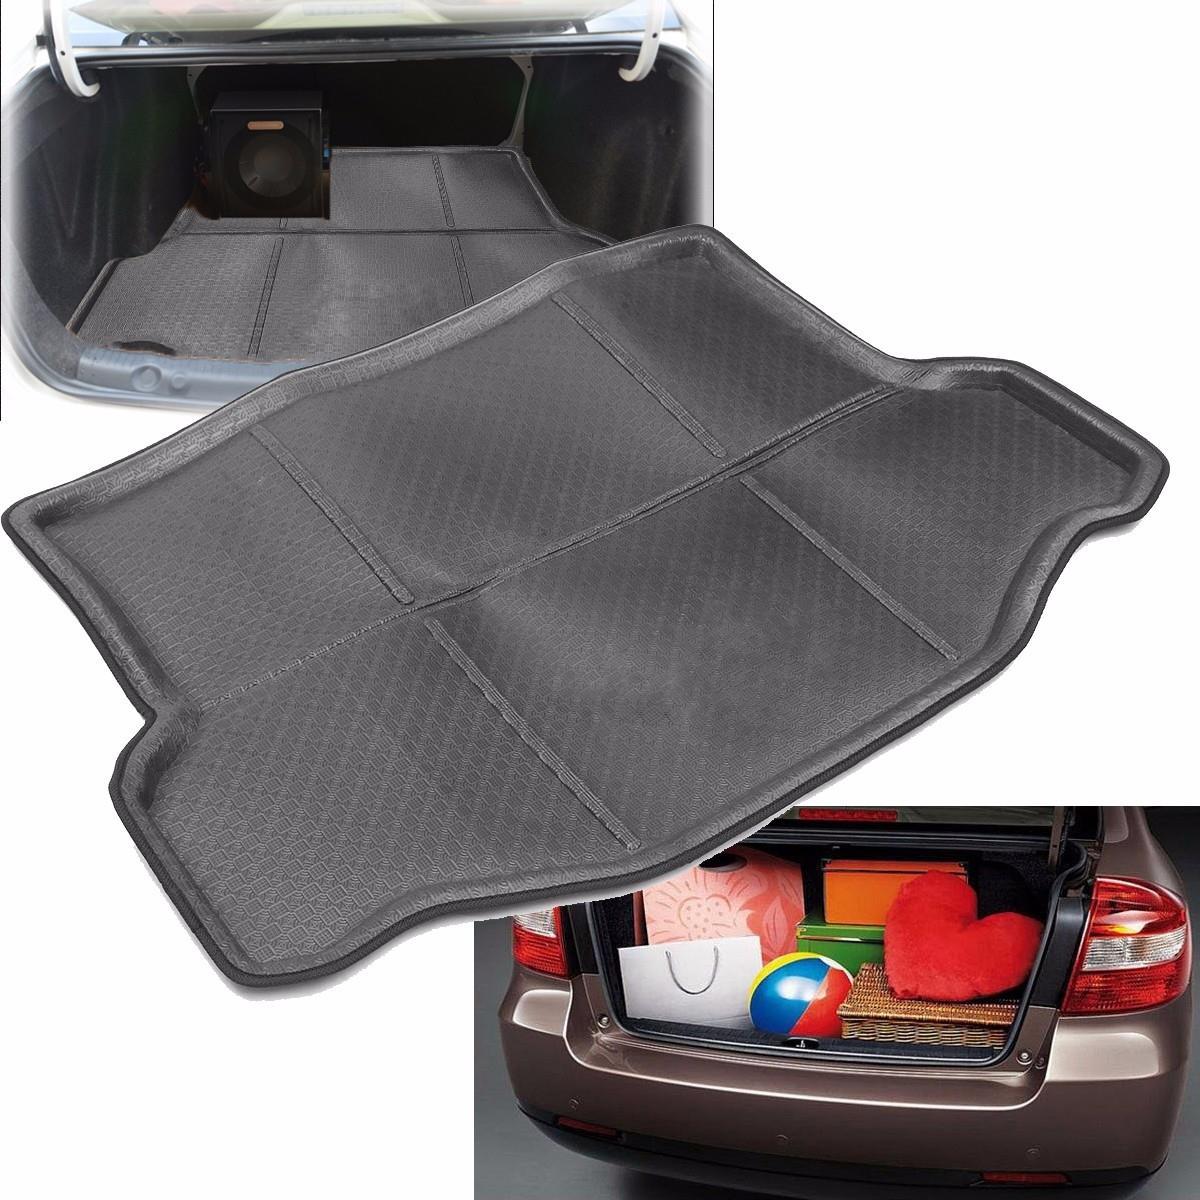 auto arri re de voiture pad tapis de coffre tapis de coffre arri re plateau chausson cargo floor. Black Bedroom Furniture Sets. Home Design Ideas